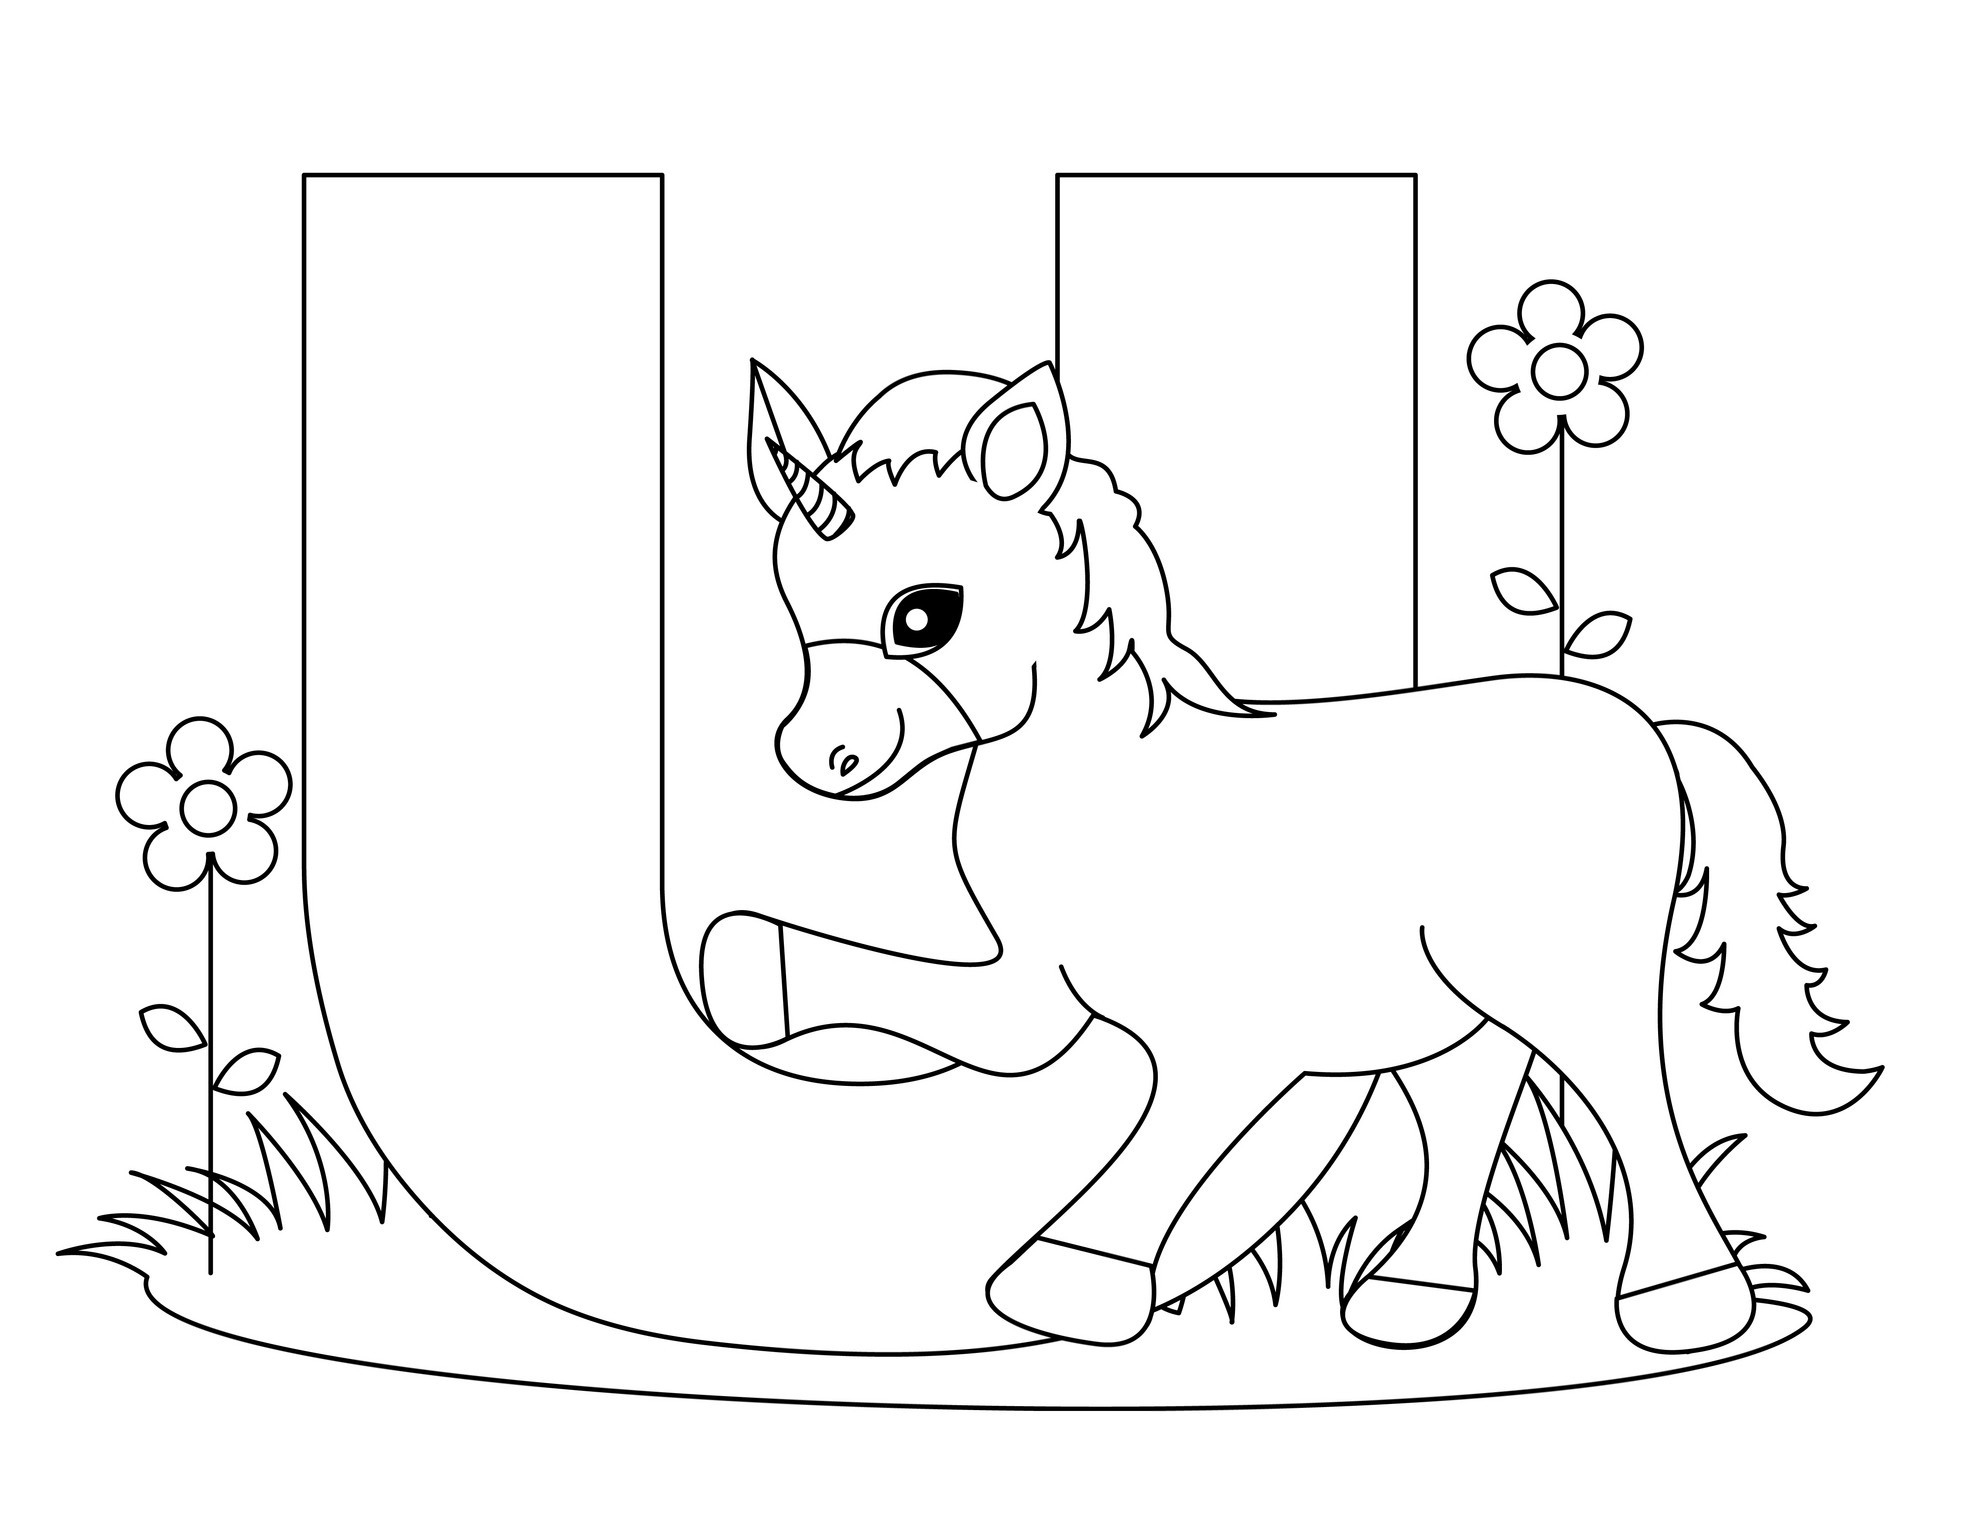 coloring pages for alphalbet - photo#8